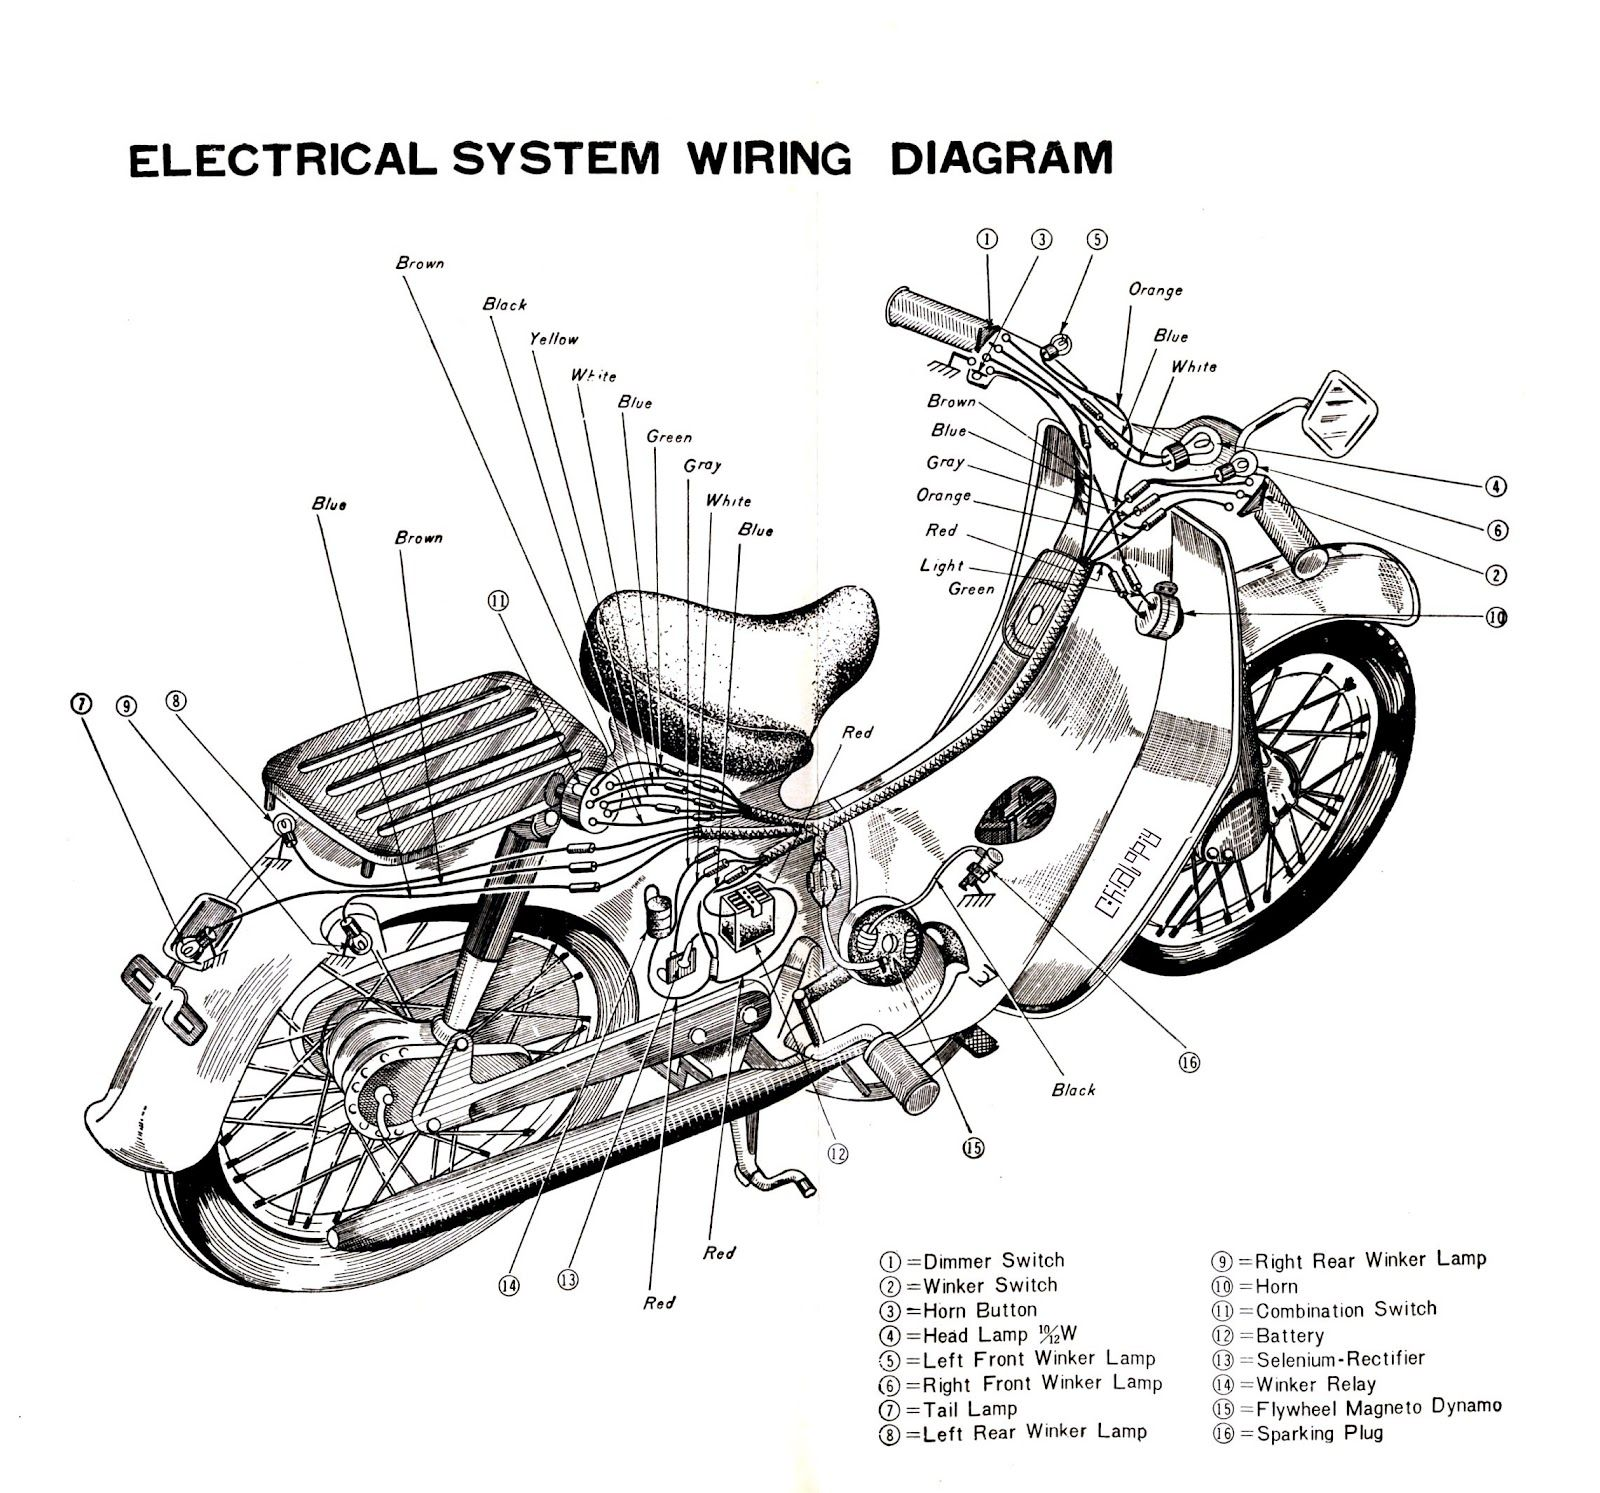 Super Club Electric Wiring Diagram Cub Project Pinterest Honda 110 Trial Bike Vintage Motorcycles Cool Motorcycle